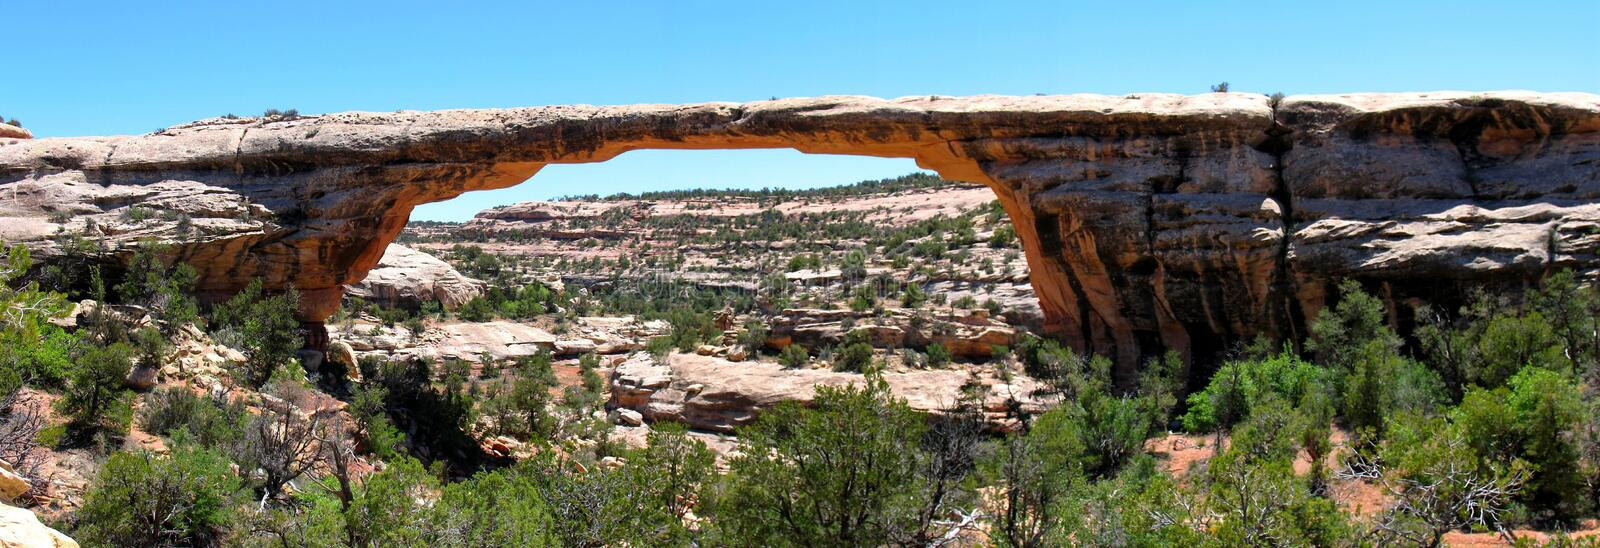 Owachomo Bridge, Utah. Owachomo Bridge, Natural Bridges National Monument, Utah, USA royalty free stock image